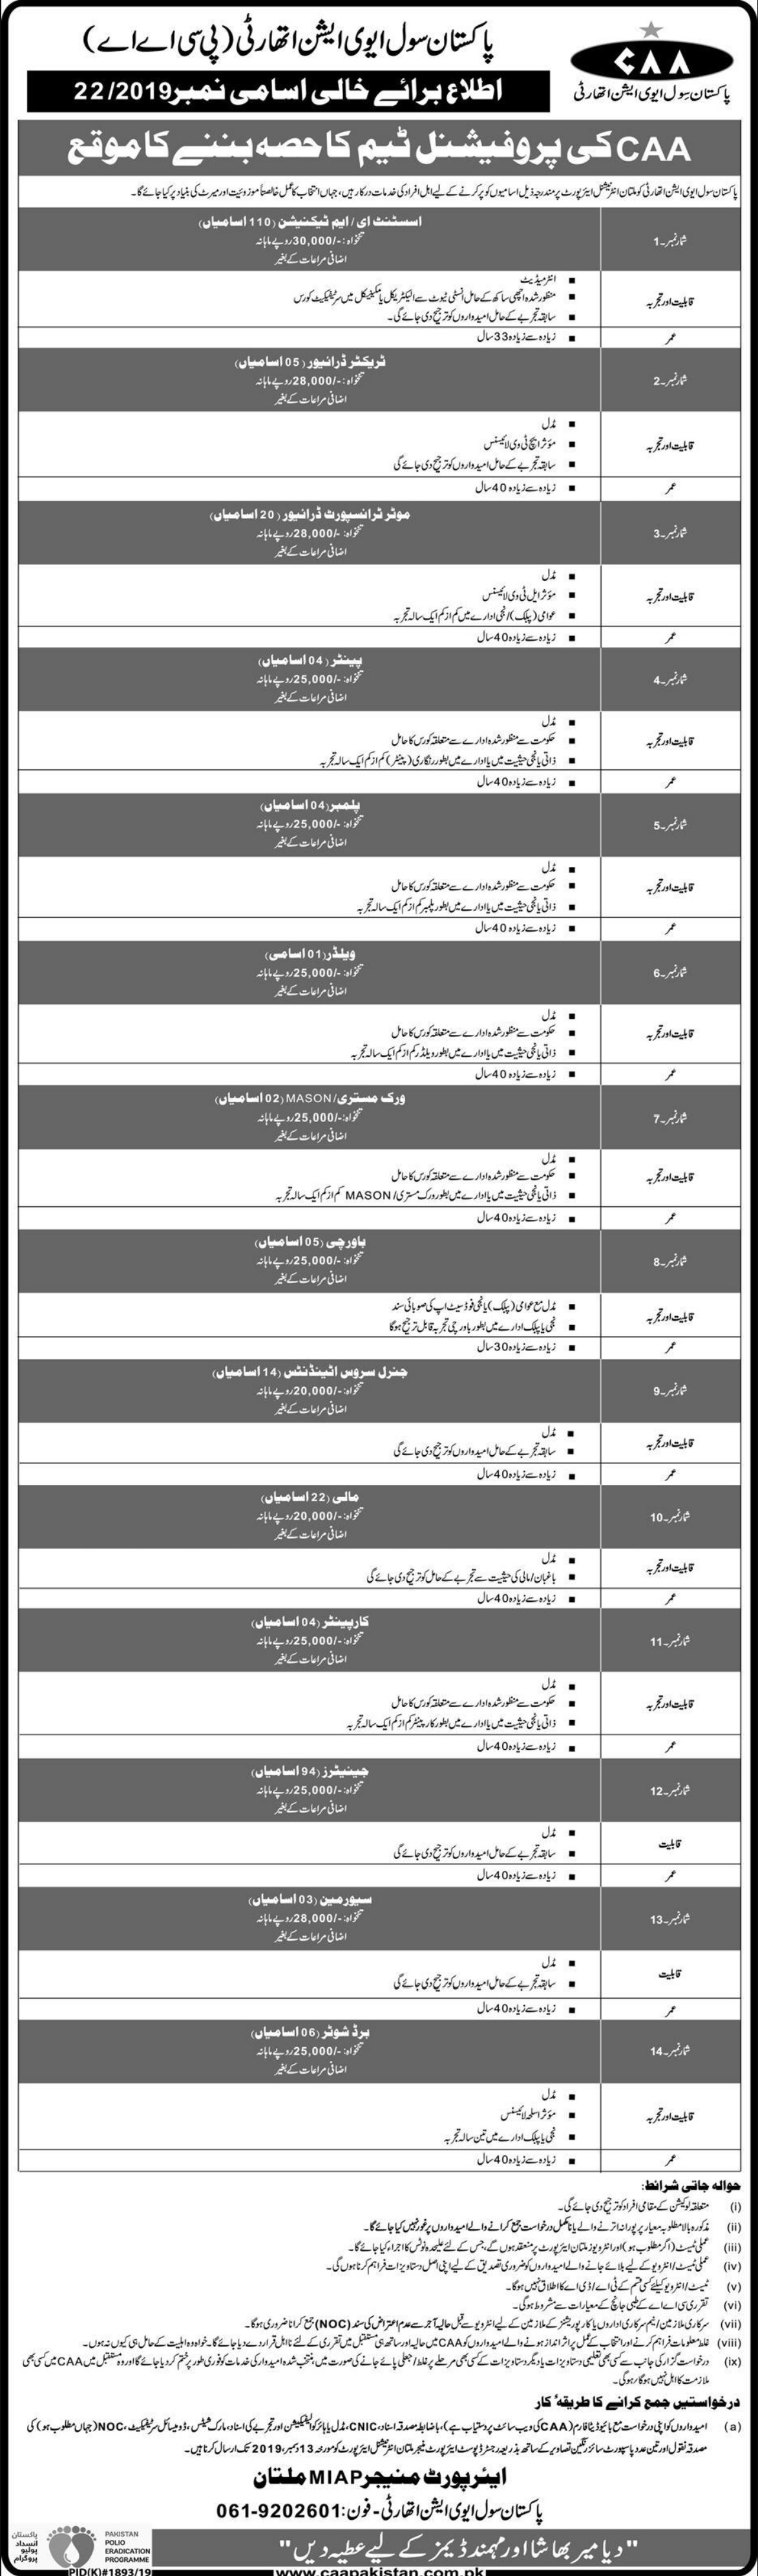 CAA Pakistan Jobs 2019 Multan International Airport